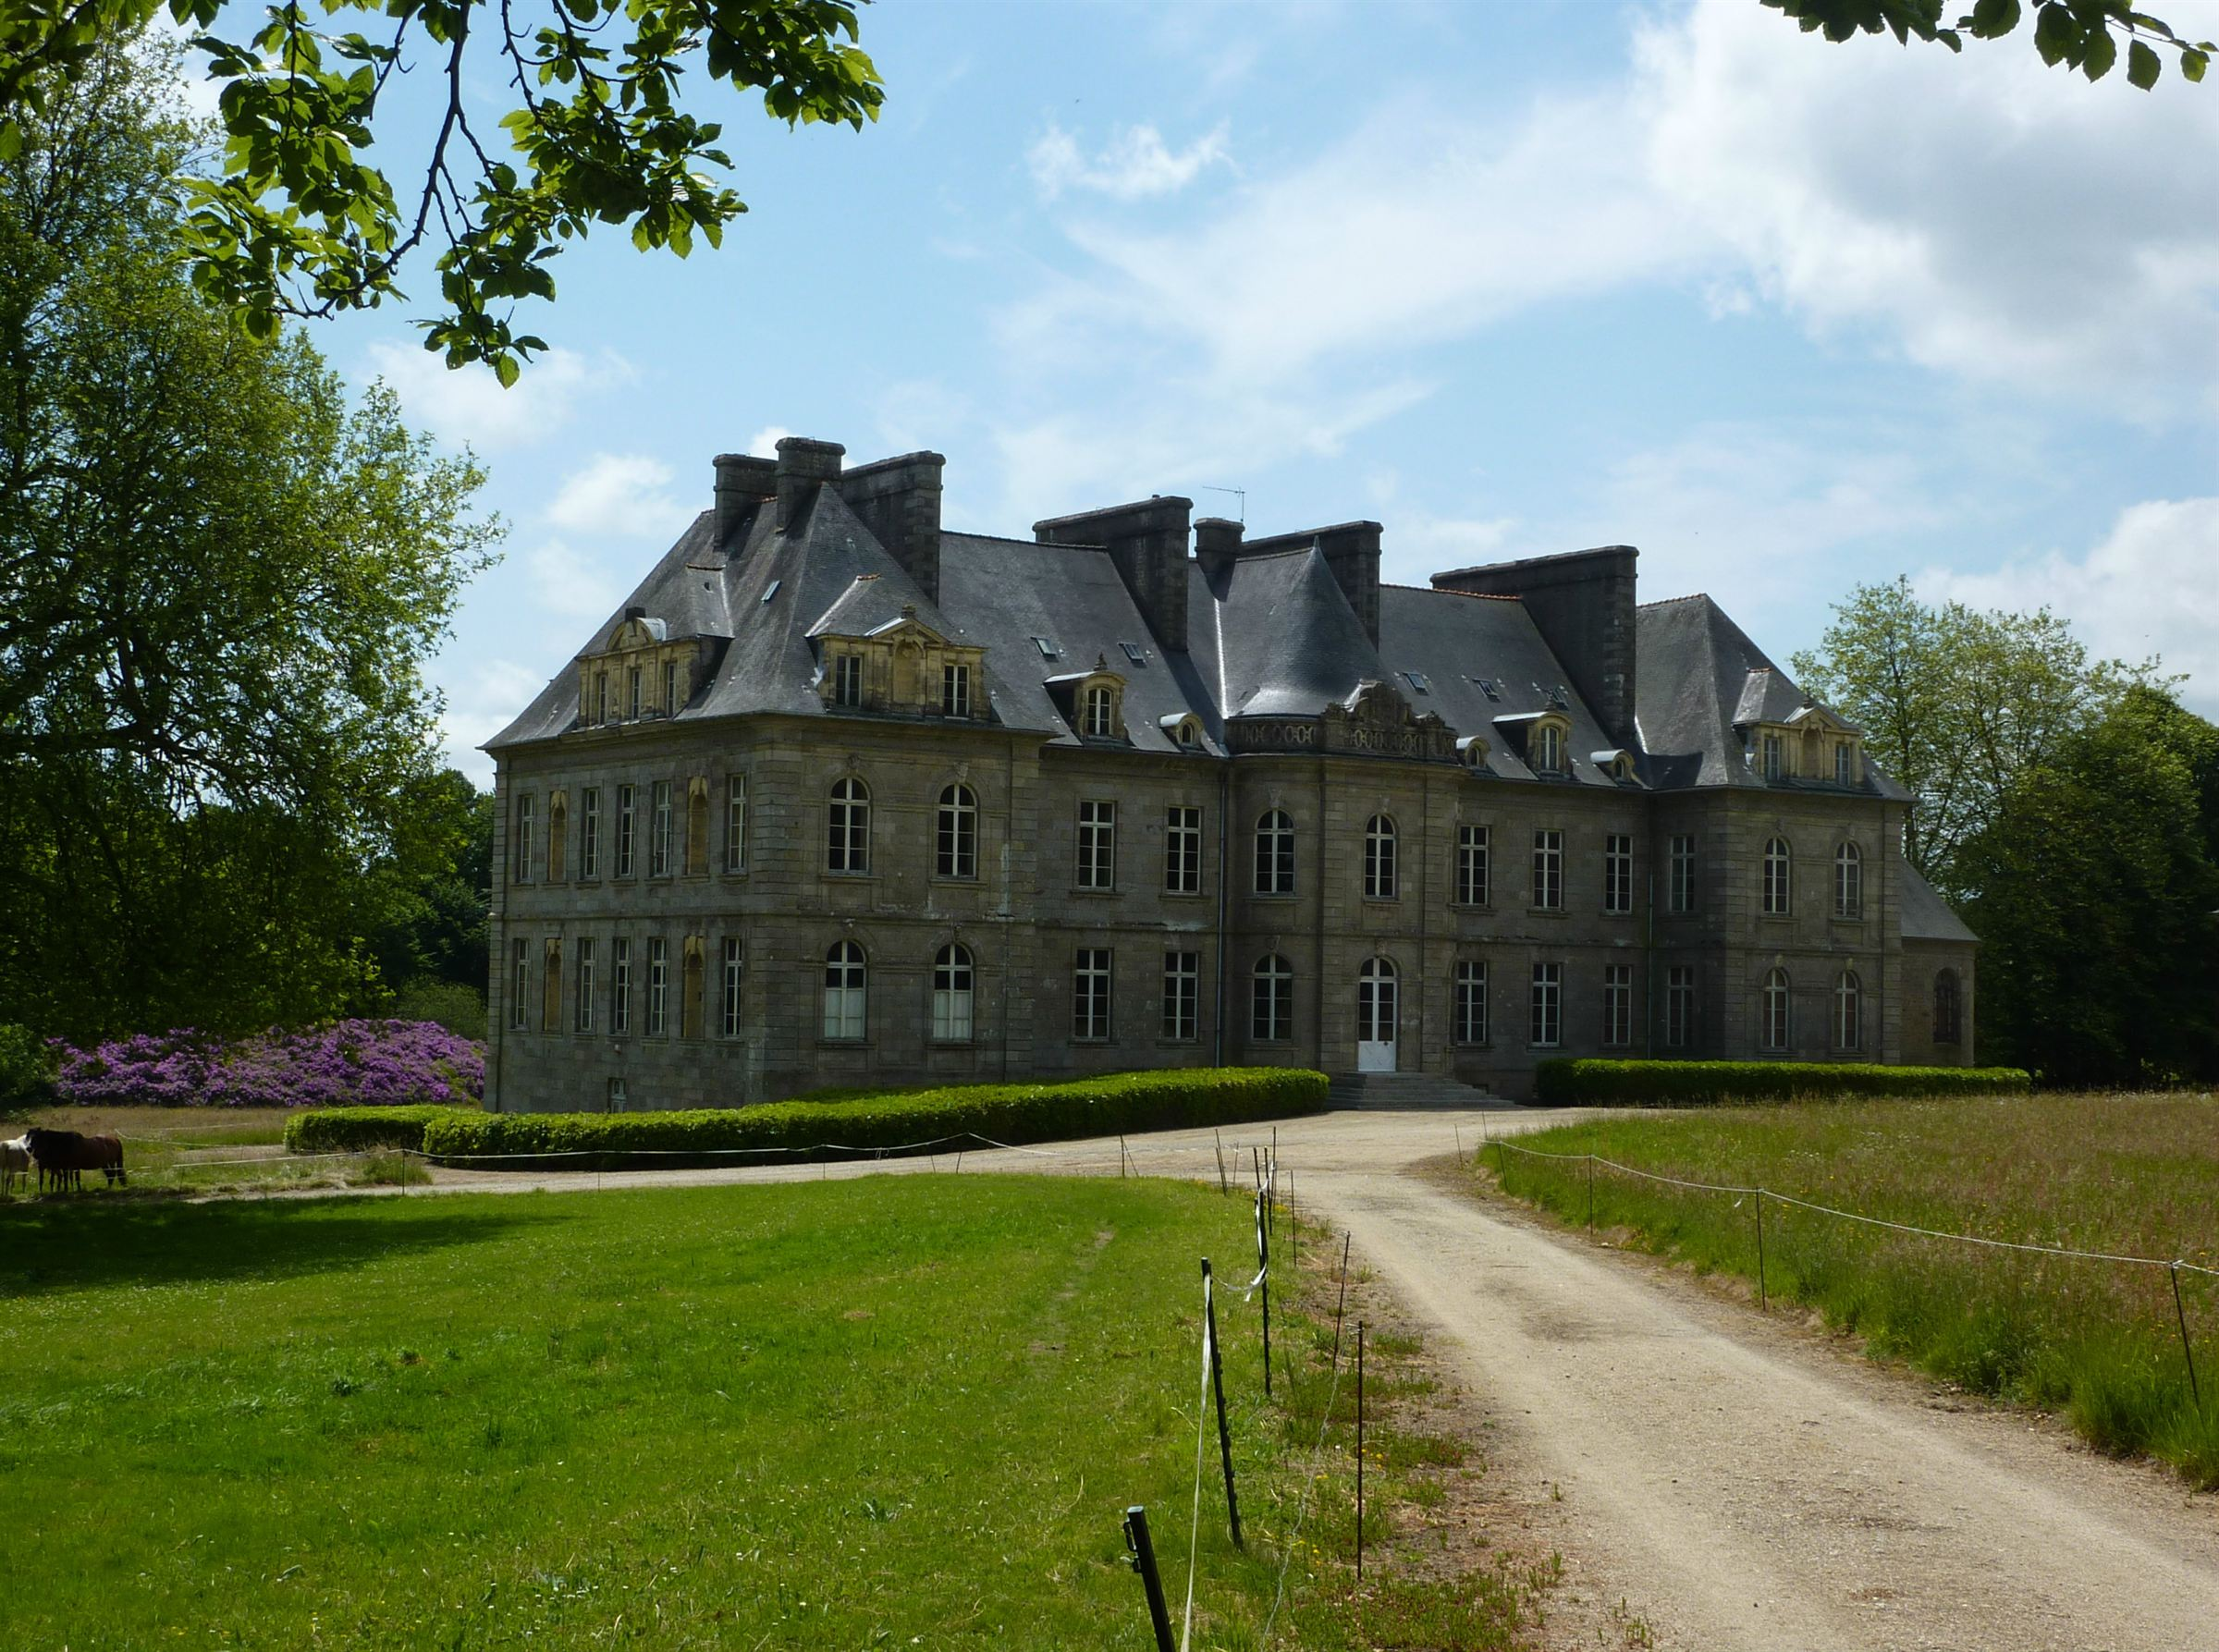 sales property at Listed 18th century Castle for sale in Brittany set on 115 hectares